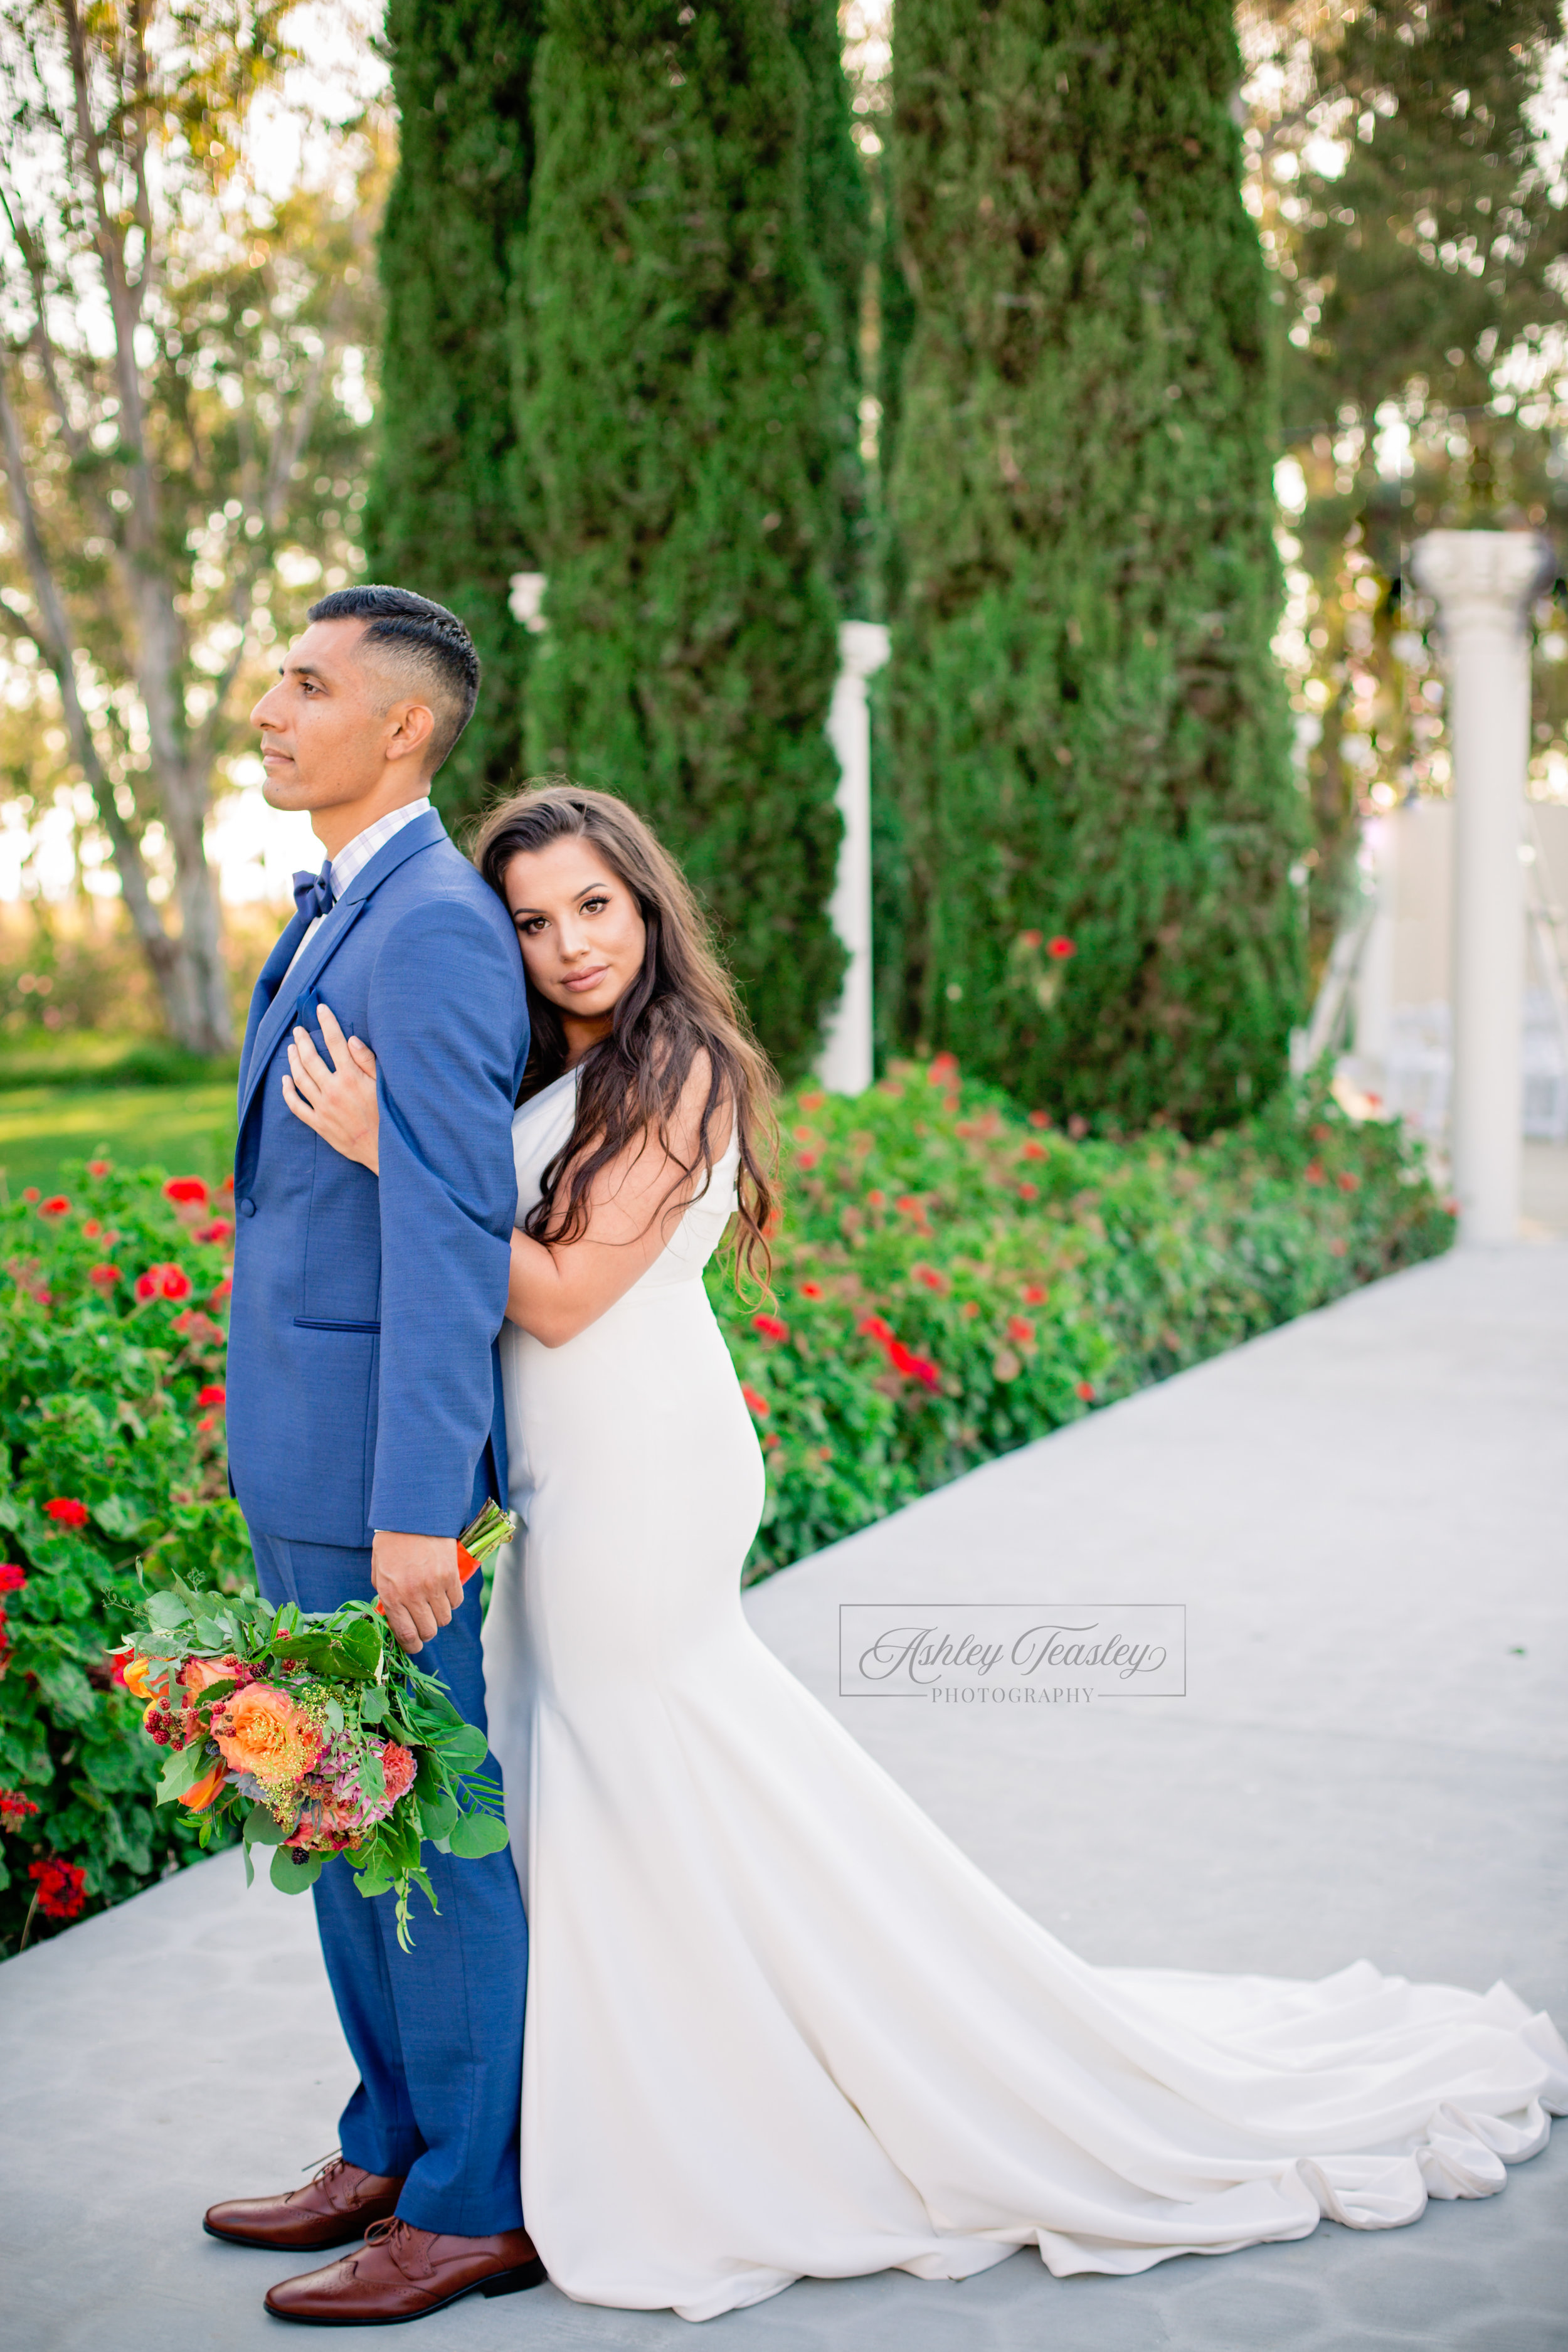 Social Media - Belle Vie - Sacramento Wedding Photographer - Ashley Teasley Photography (8 of 13).jpg